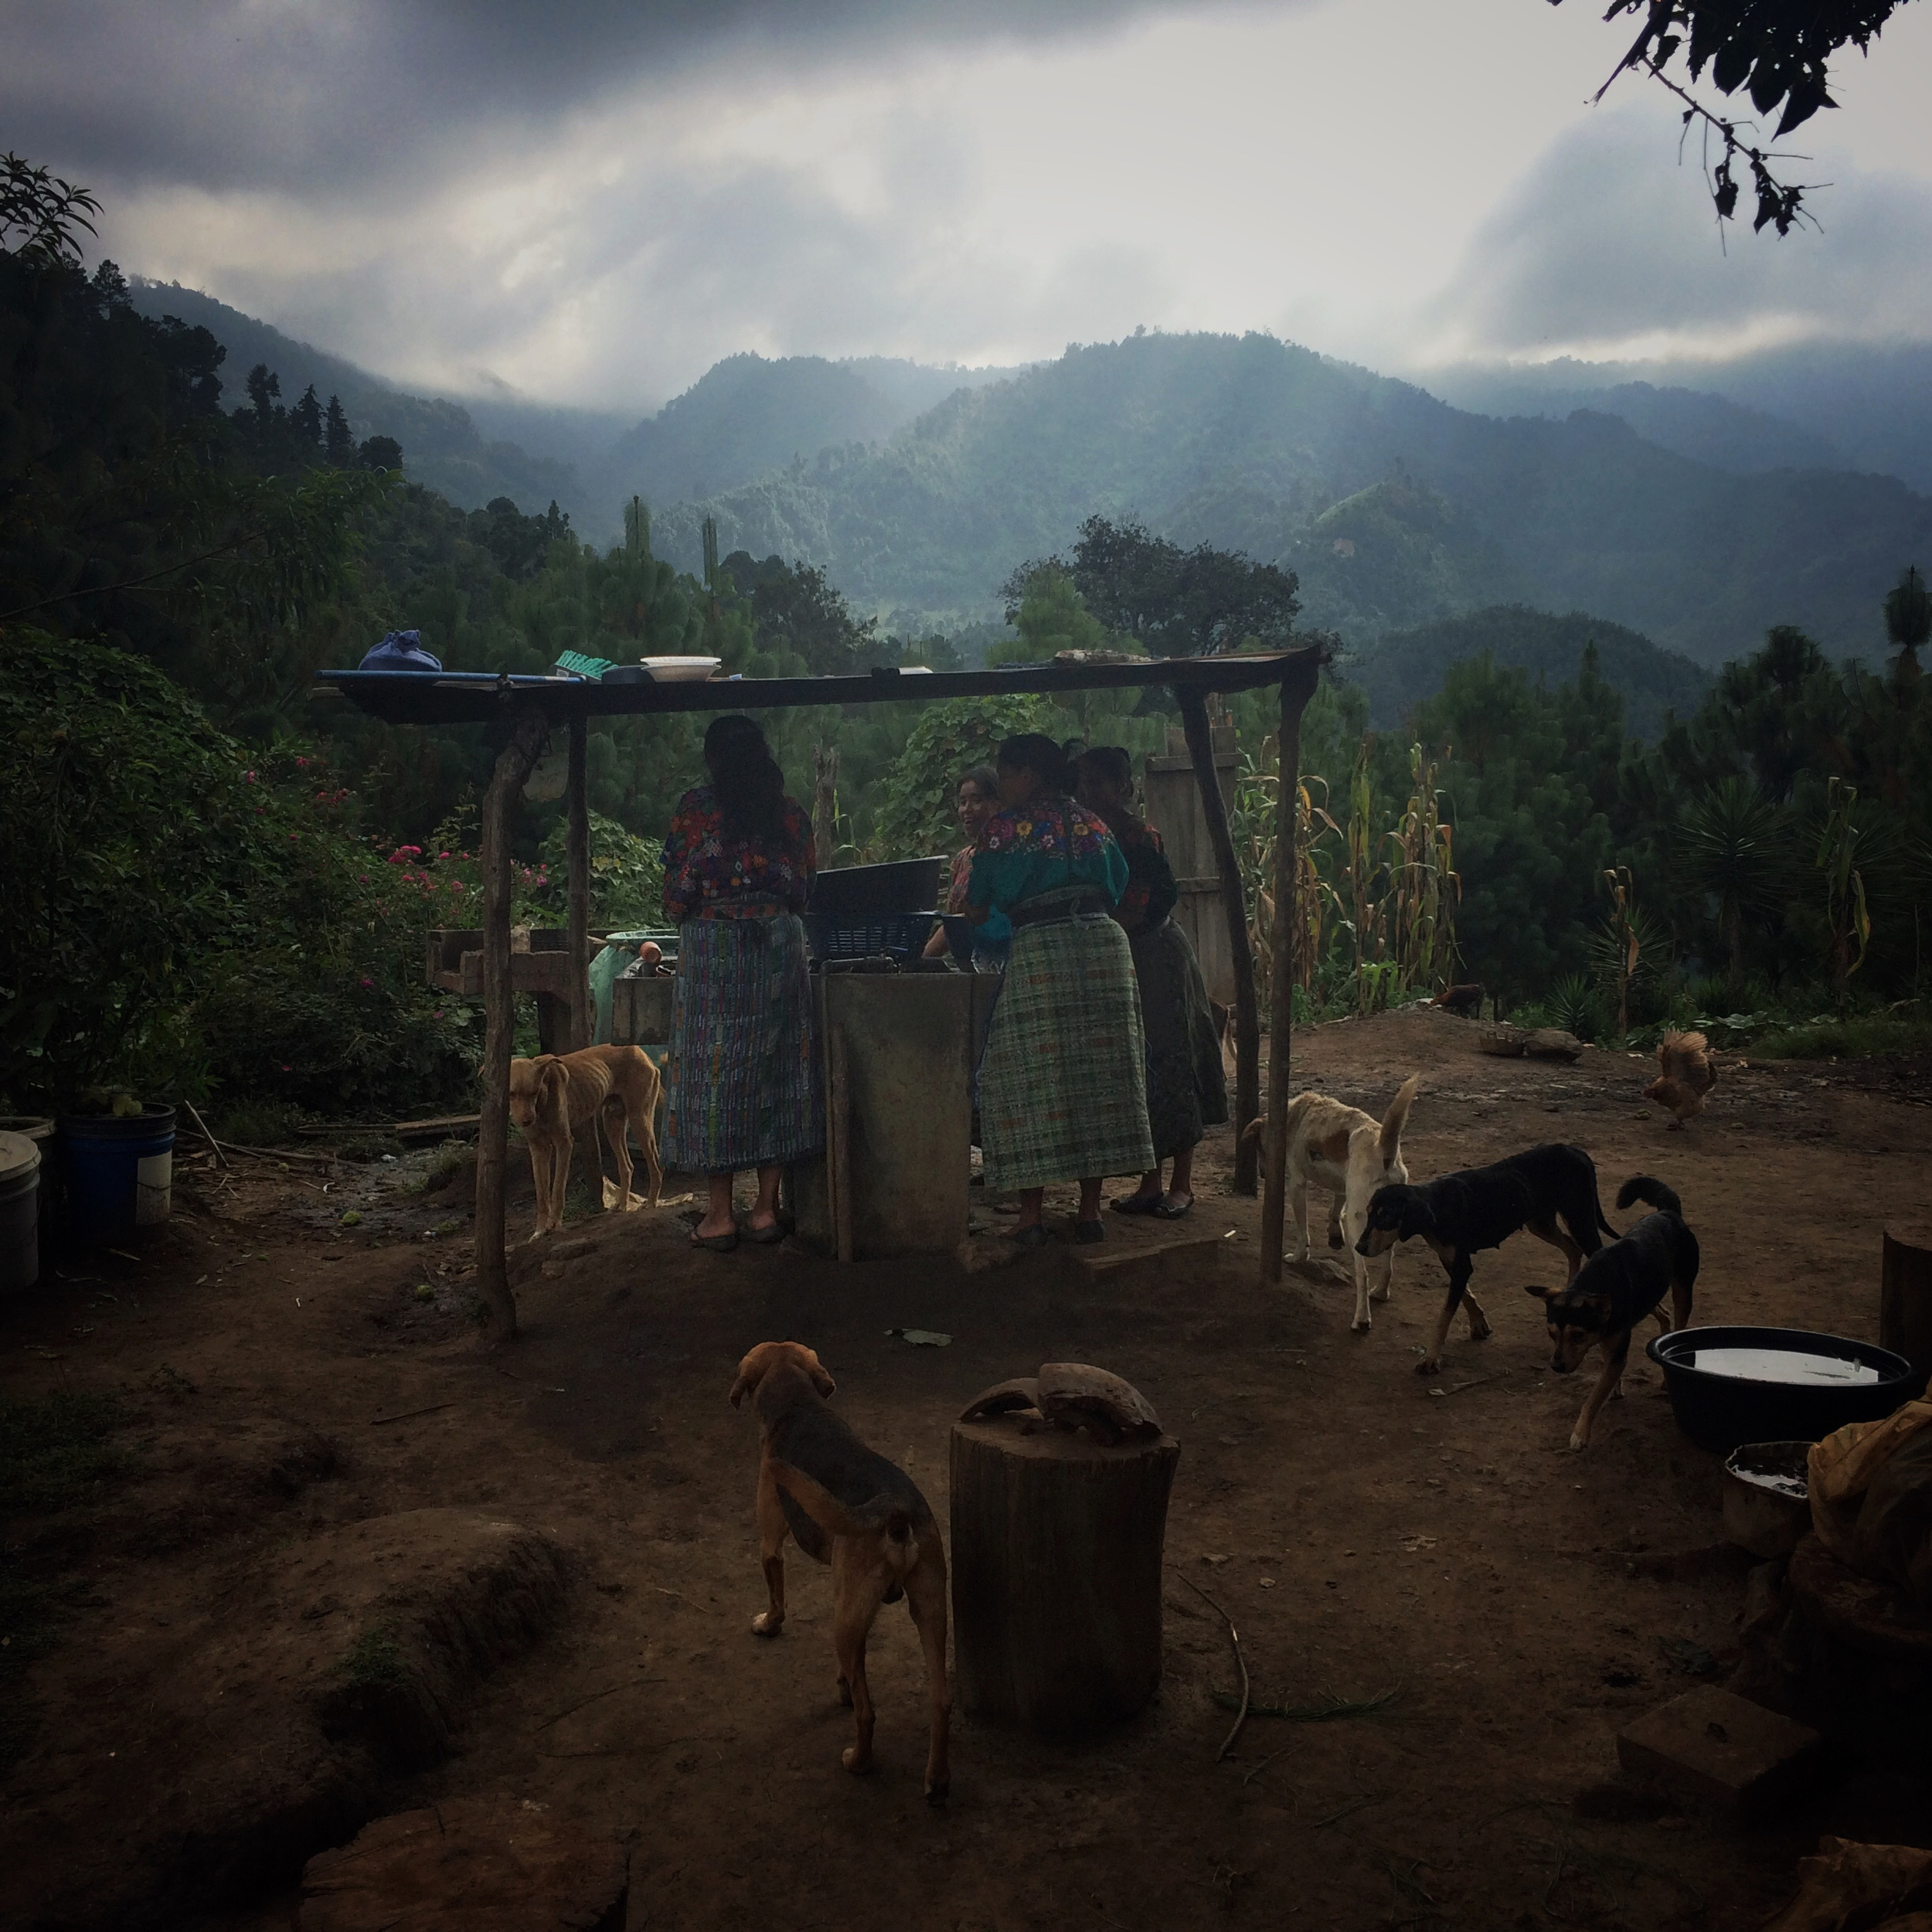 Local Kakchiquel Mayan women wash the dishes during the wake of Clementino Buc Sac. On October 28, 2015, members from the Forensic Anthropology Foundation of Guatemala (FAFG) positively identified remains of three Kakchiquel Mayans who were victims of the country's civil war, including Buc Sac's. All three victims were abducted from their homes by the Guatemalan Army on May 4, 1982. Their remains were exhumed from a common grave in Paley, San Jose Poaquil, on February 27, 2013, and positively identified through DNA technology and returned to their families. Parajbey, Santa Apolonia, Chimaltenango, Guatemala. October 28, 2015. (James Rodriguez)